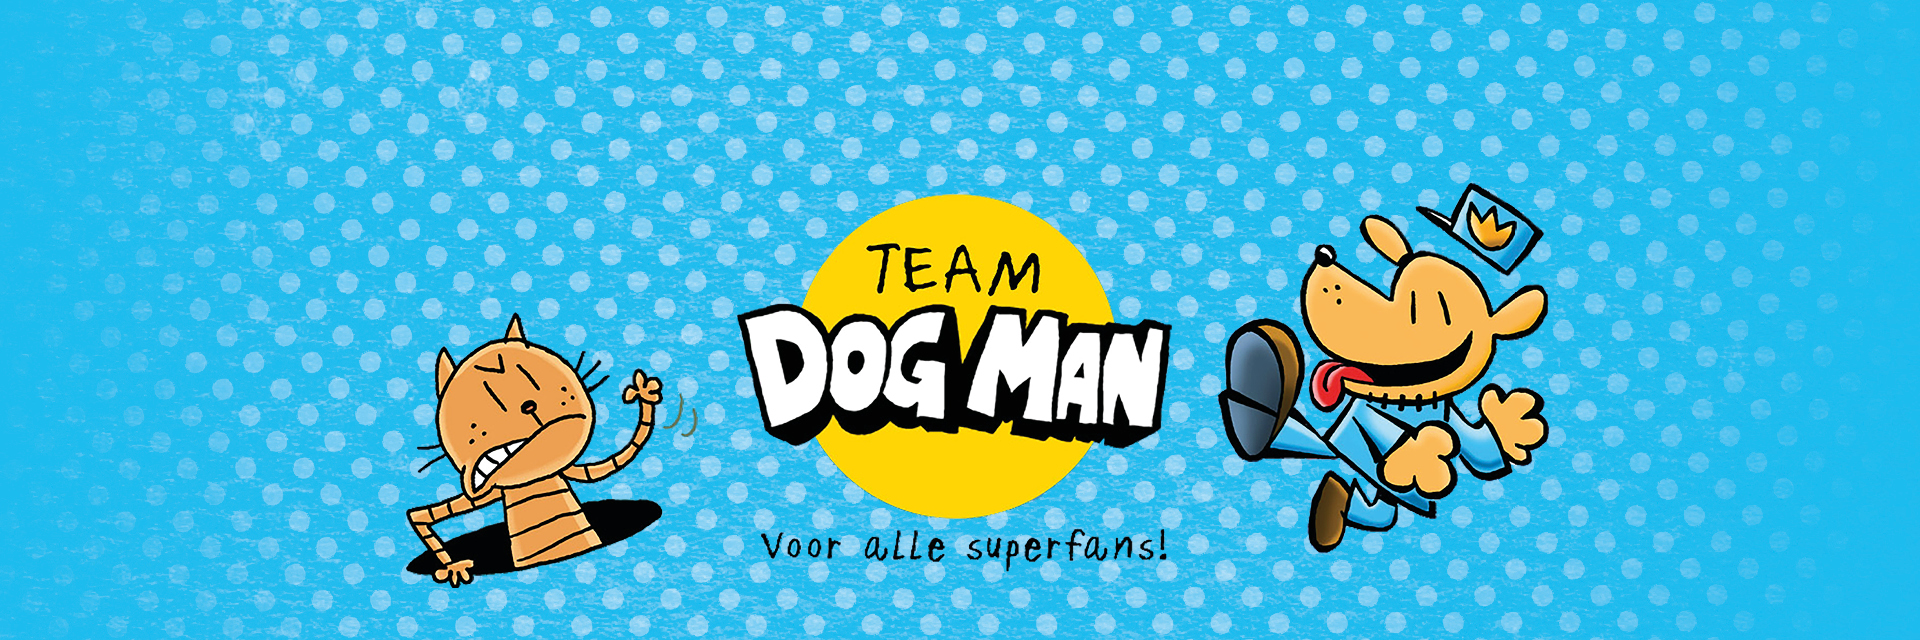 Team Dog Man - Dav Pilkey